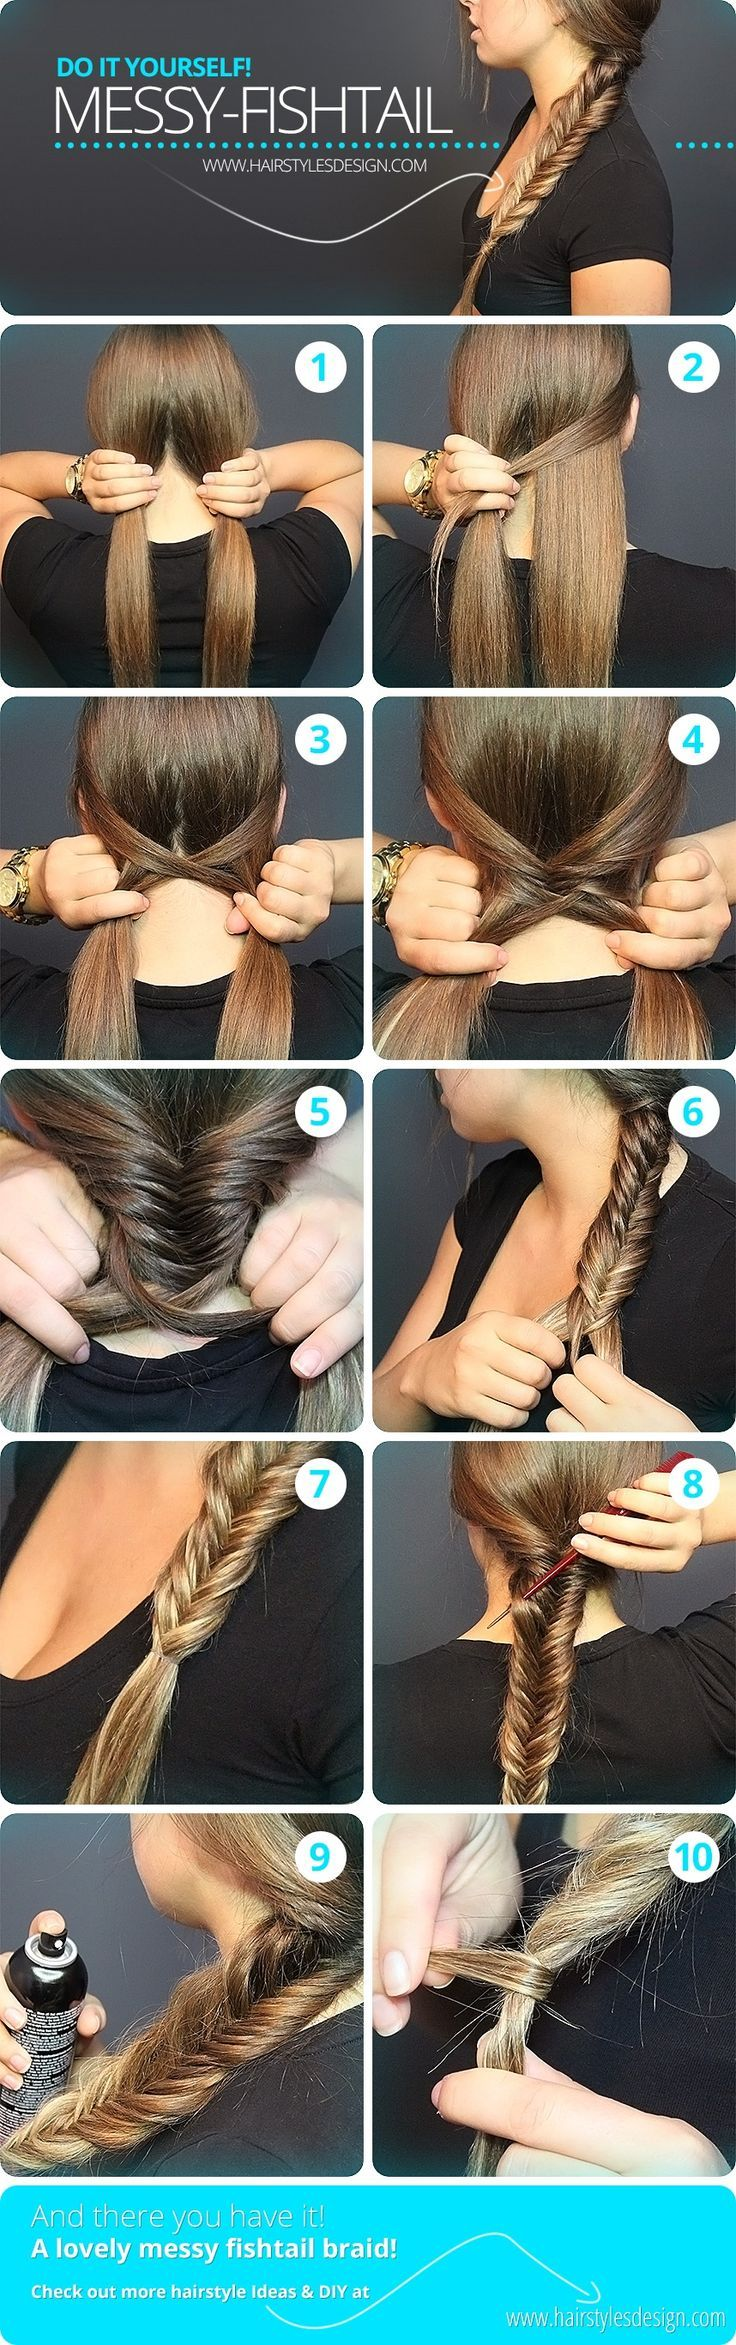 Never give up chasing the latest hair tutorials for new days. Today you are lucky to find out some practical tutorials introduced by Prettydesigns. They can pair your winter looks and fit any occasion. Have no hesitation to check out these step-by-step tutorials for your winter hair looks. The DIY tutorials are going to tell …